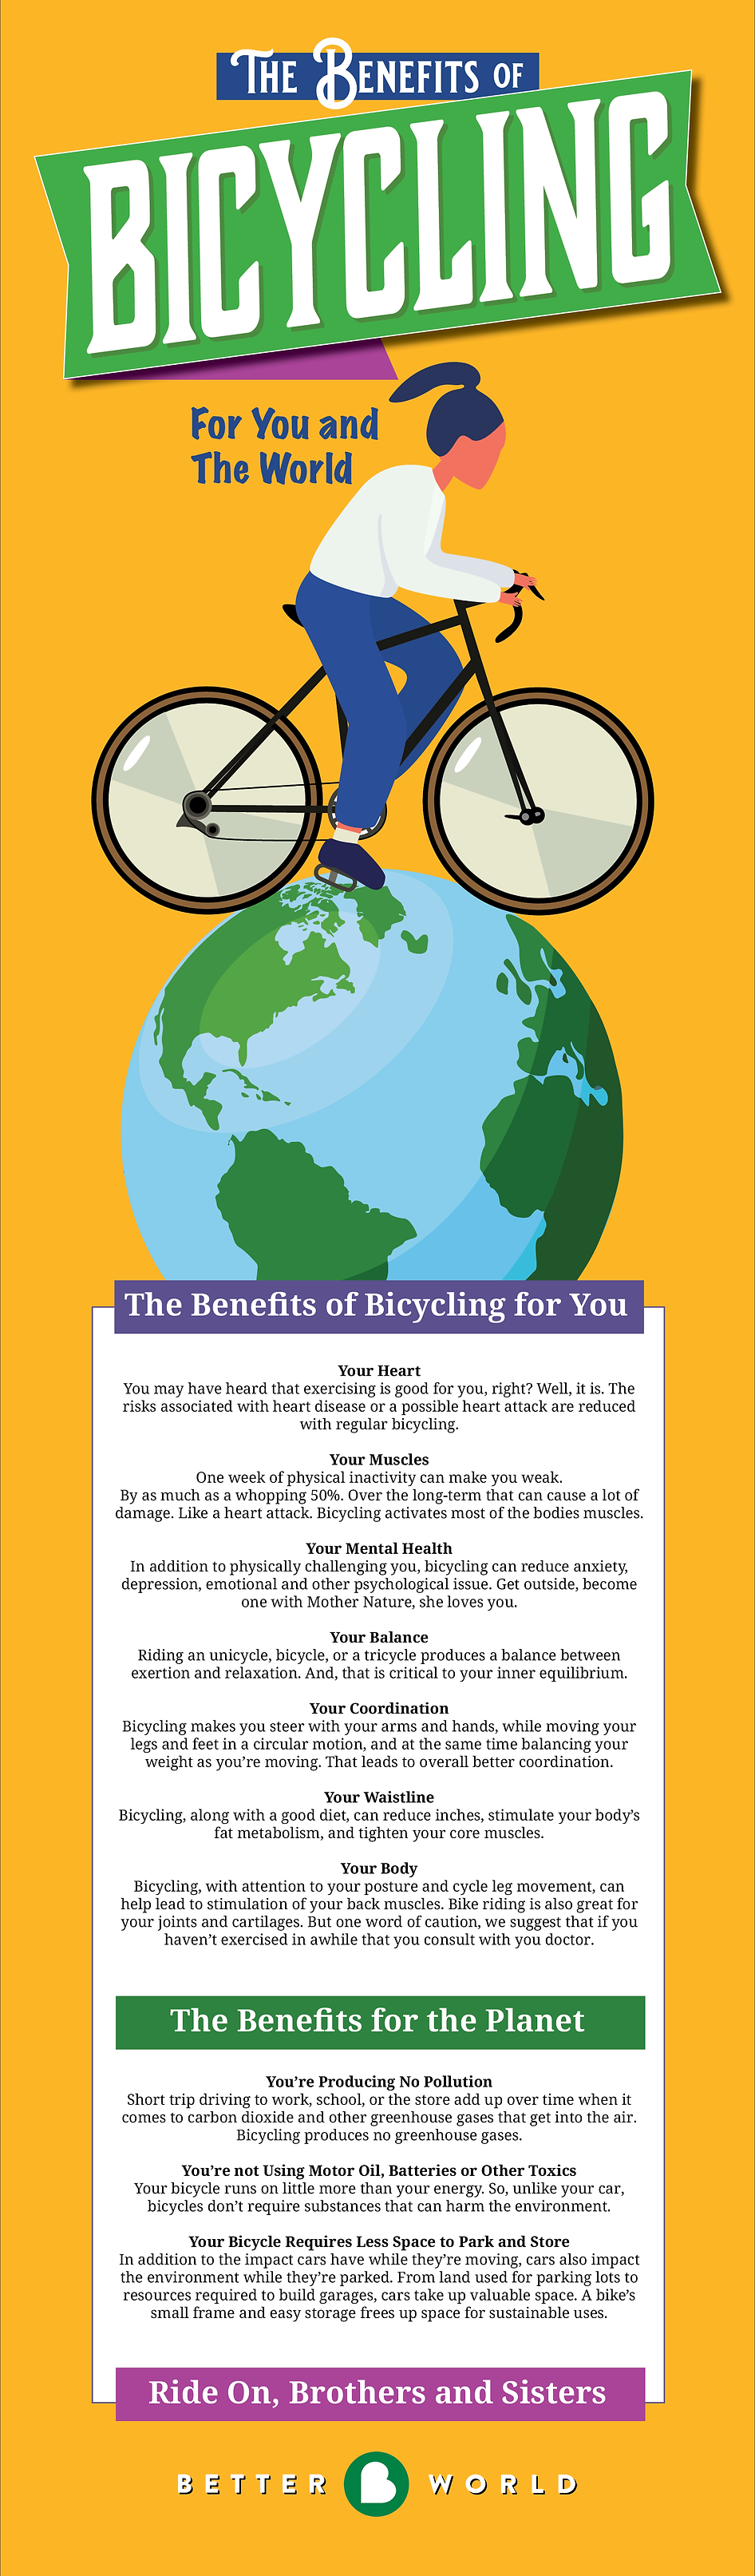 Better World Club benefits of bicycling for health ant the environment infographic poster